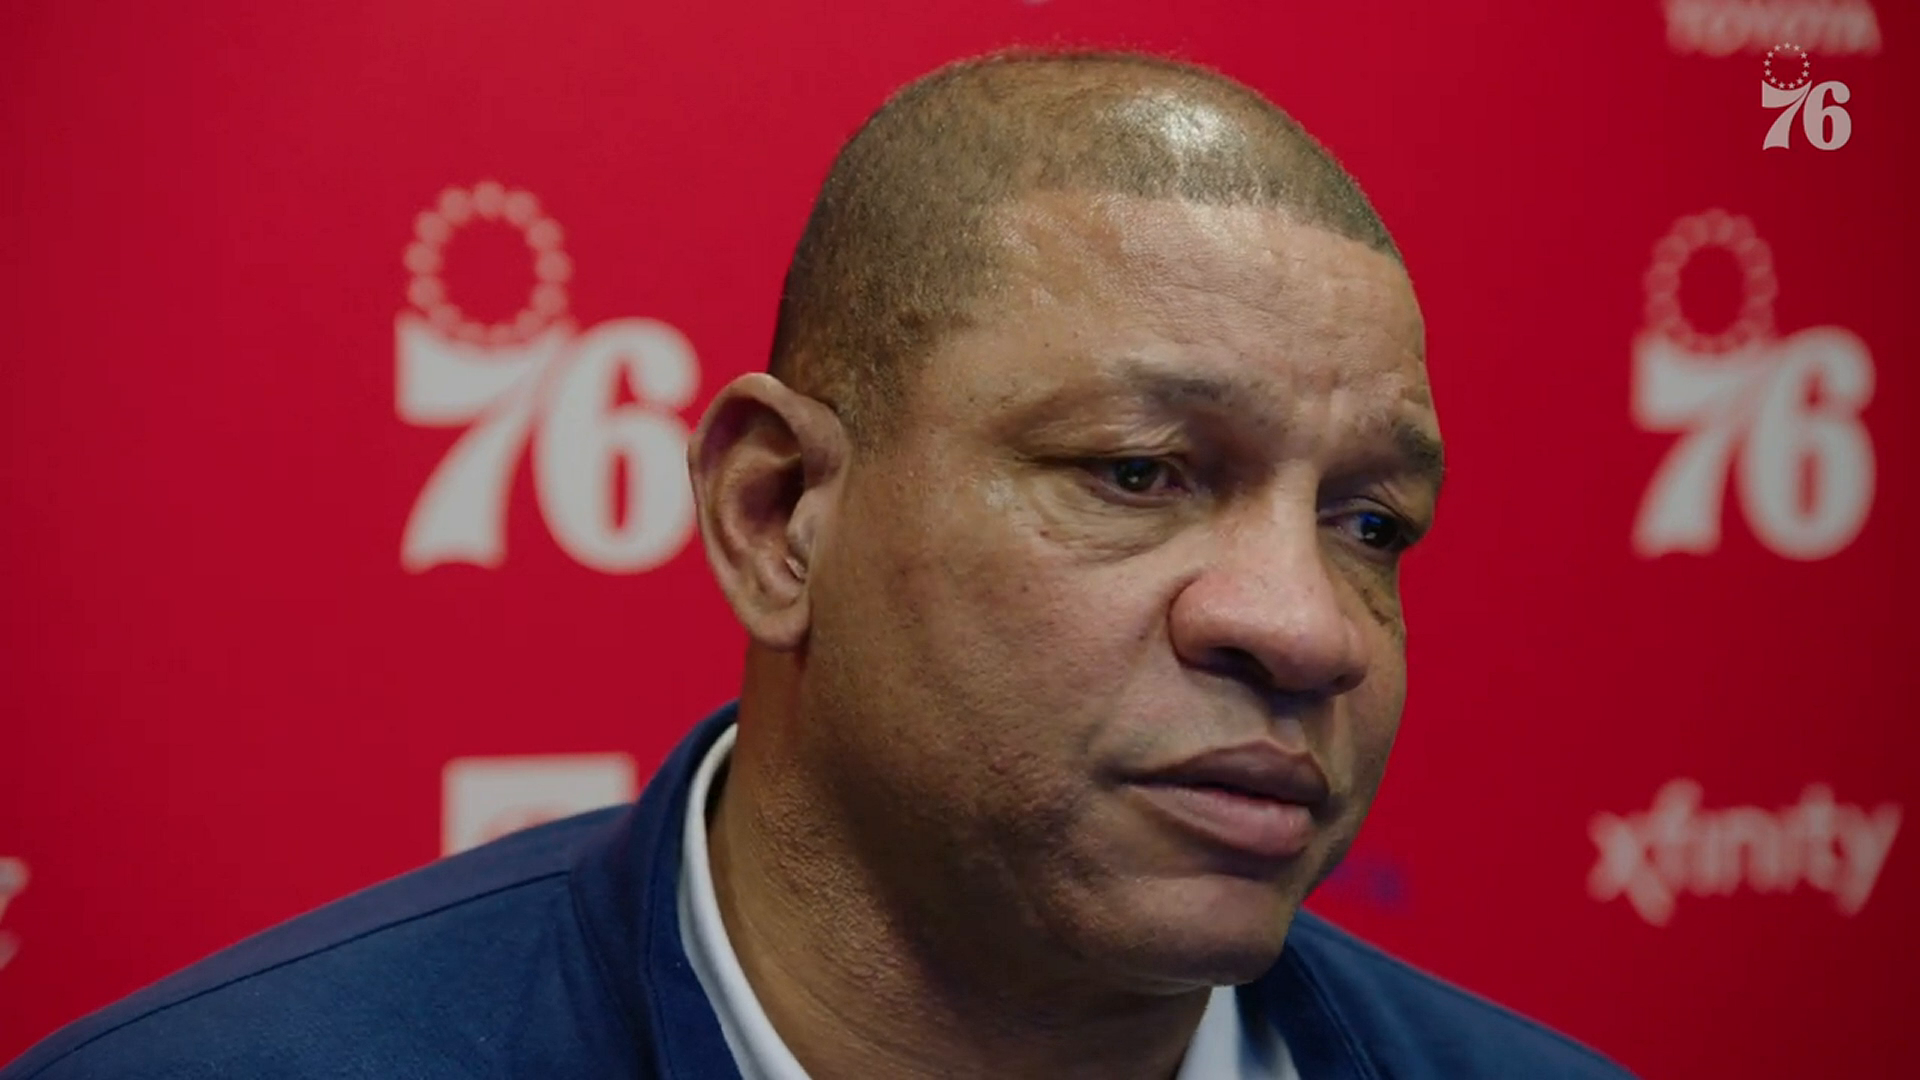 Doc Rivers | Postgame Media vs Miami Heat (01.14.21)